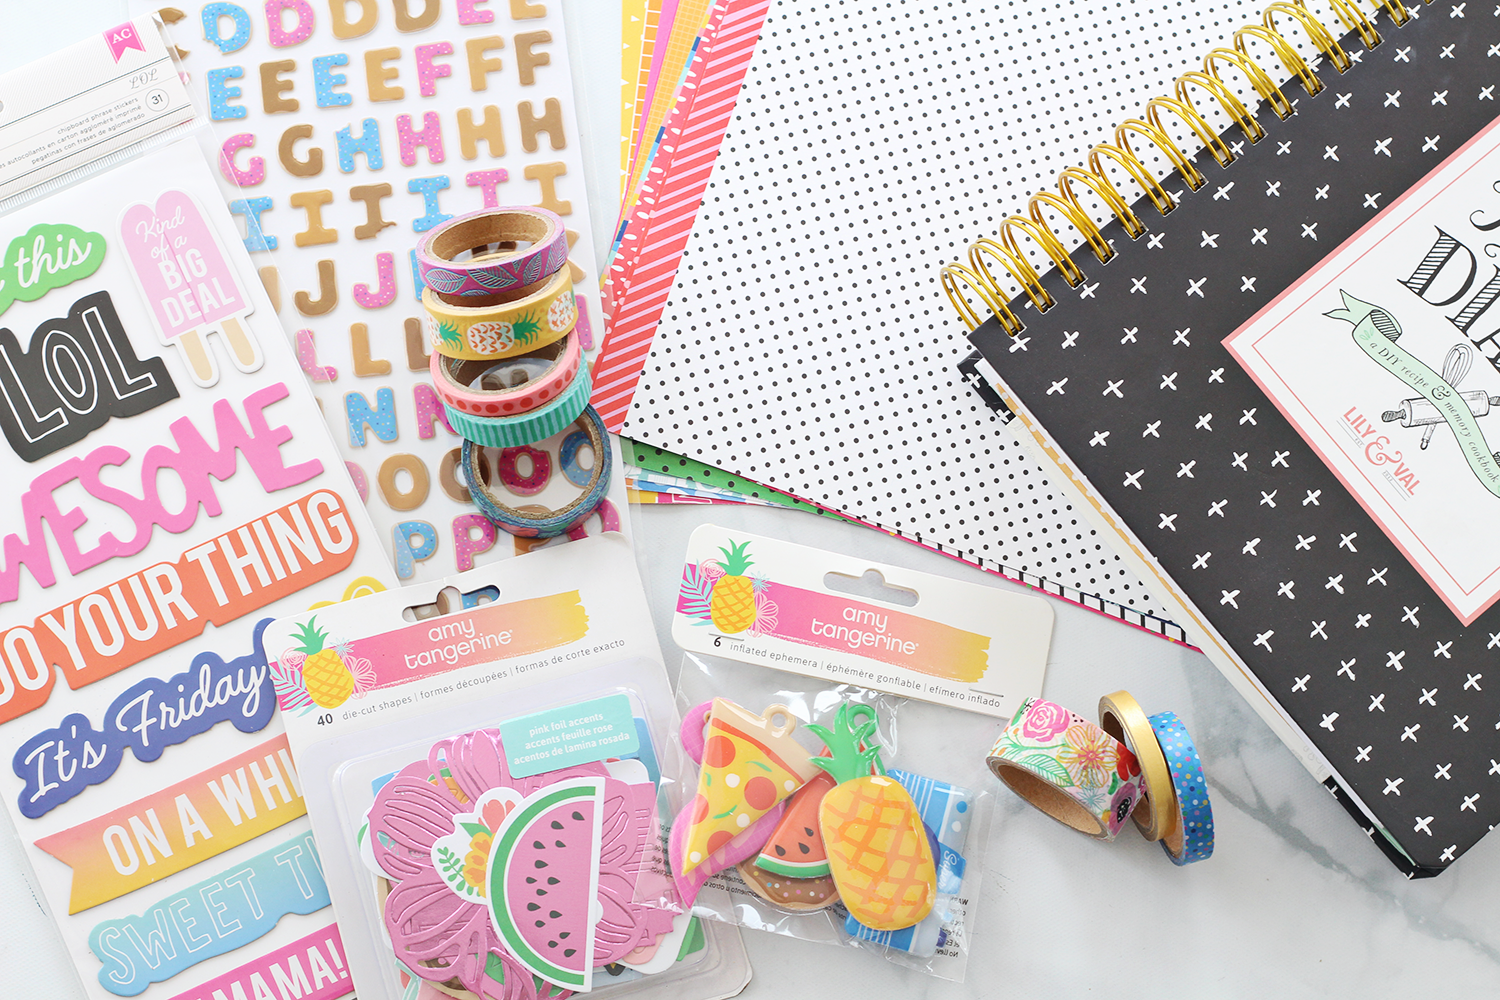 Crafting The Keepsake Kitchen Diary With Amy Tangerine Scrapbook Supplies